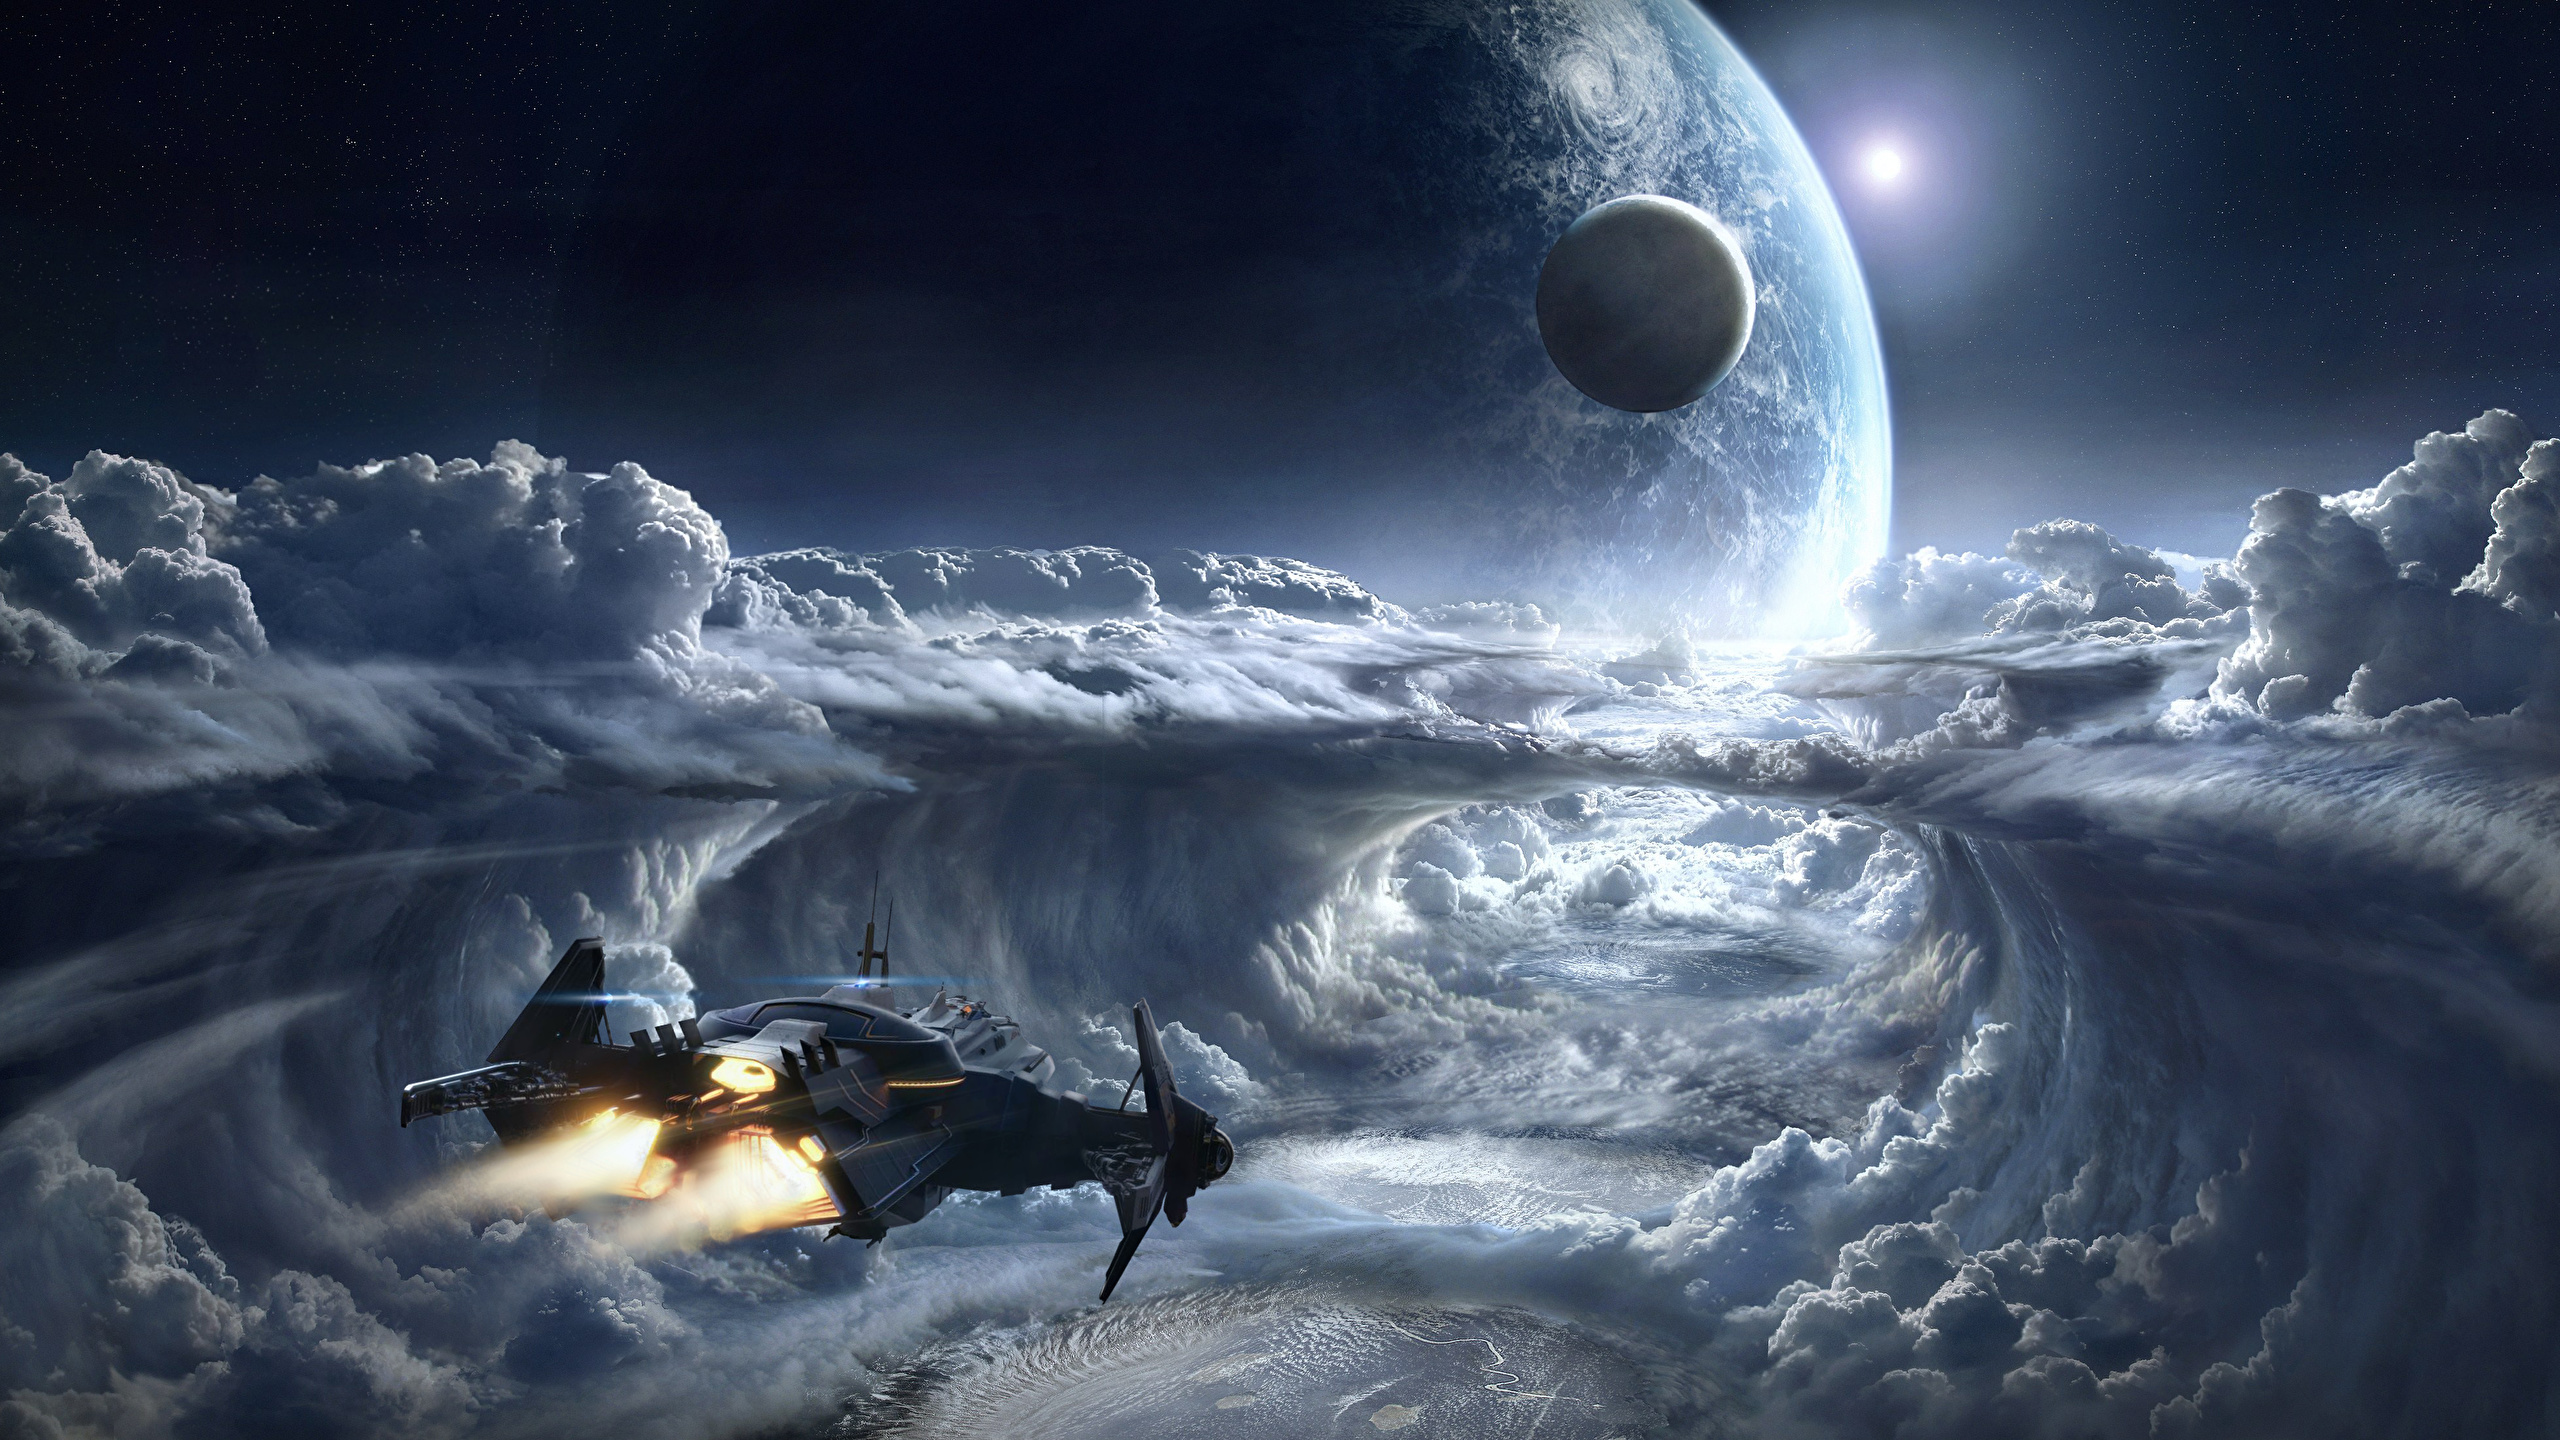 Wallpaper Star Citizen Planets Space Fantasy ship Games Clouds 2560x1440 planet Ships vdeo game